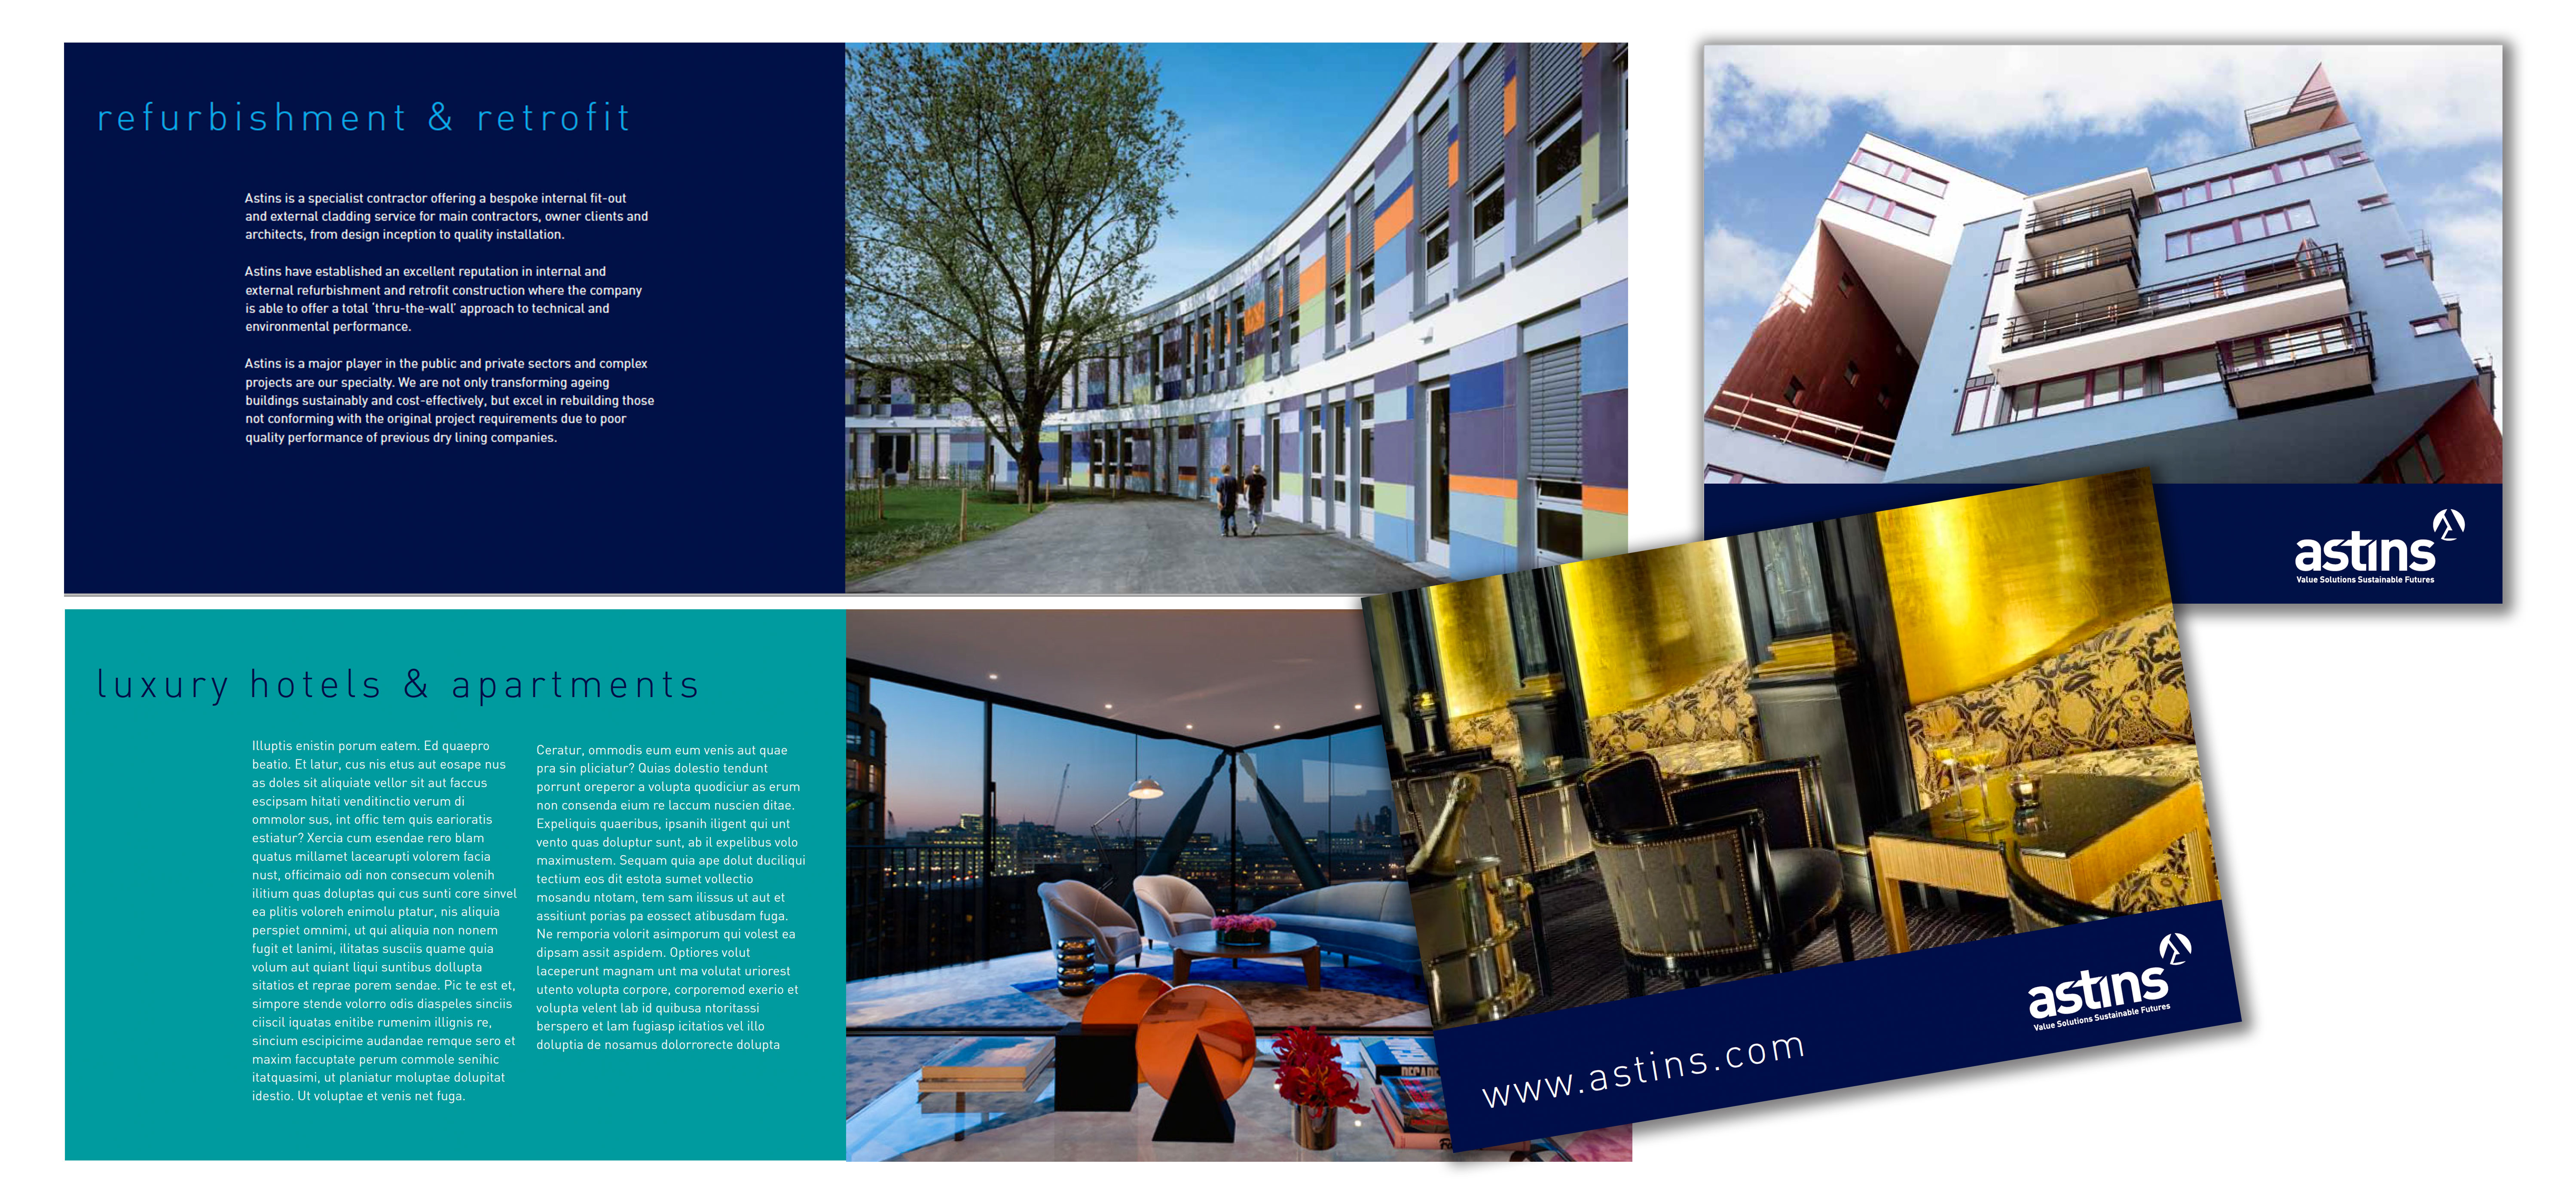 astins_booklets